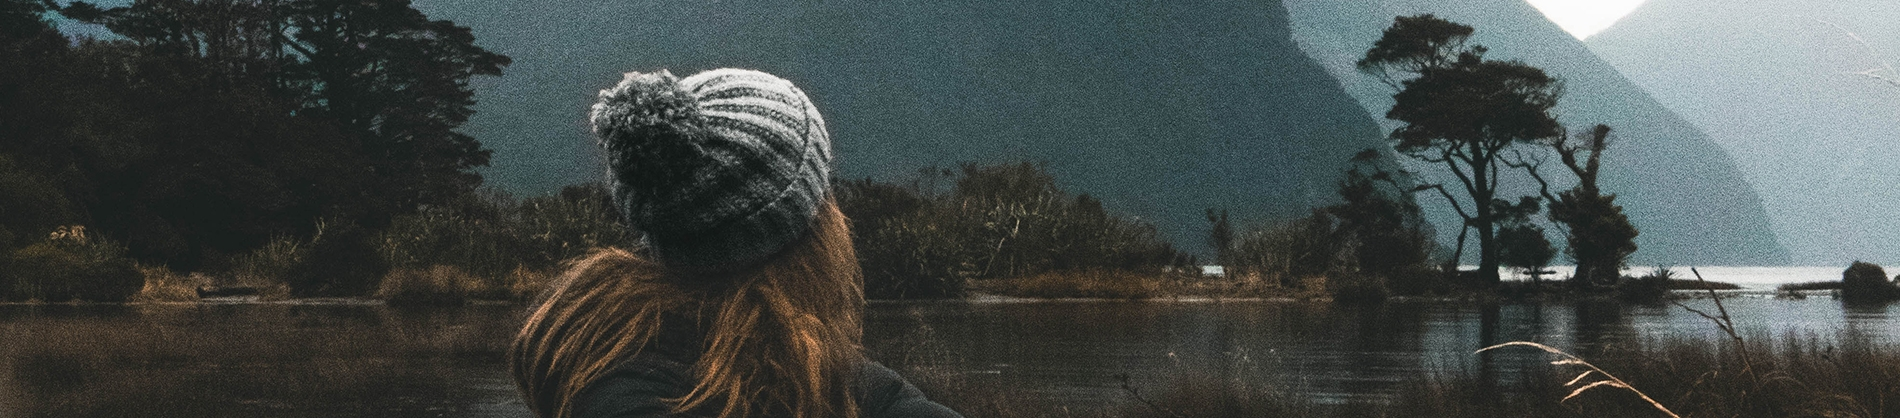 A women in a wooly hat looking out over a lake and mountains